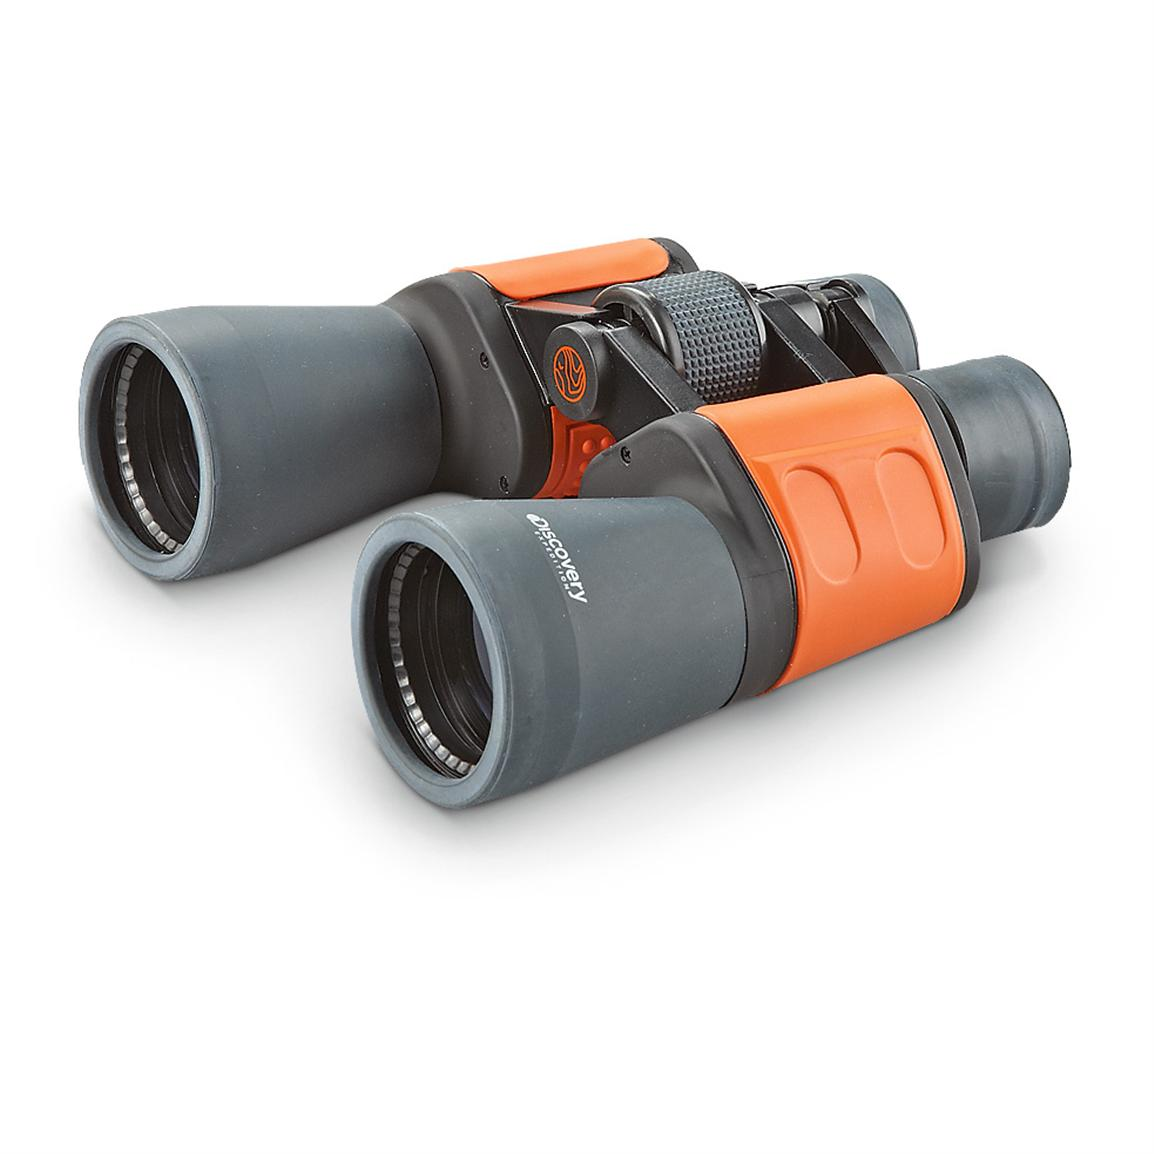 7x50mm Discovery Expedition Marine Binoculars